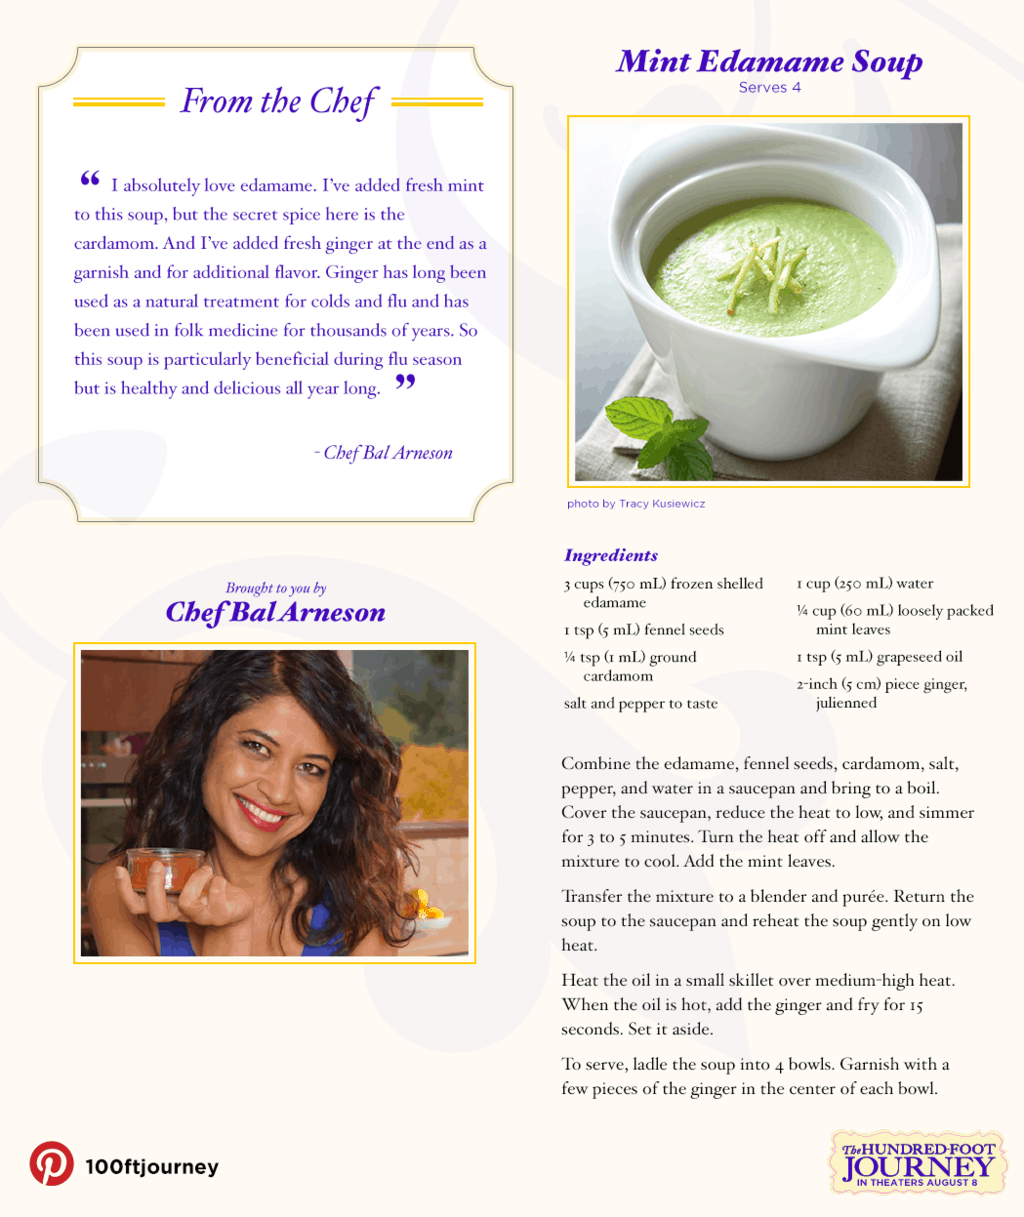 Mint Edamame Soup Recipe from THE HUNDRED-FOOT JOURNEY #100FootJourneyEvent